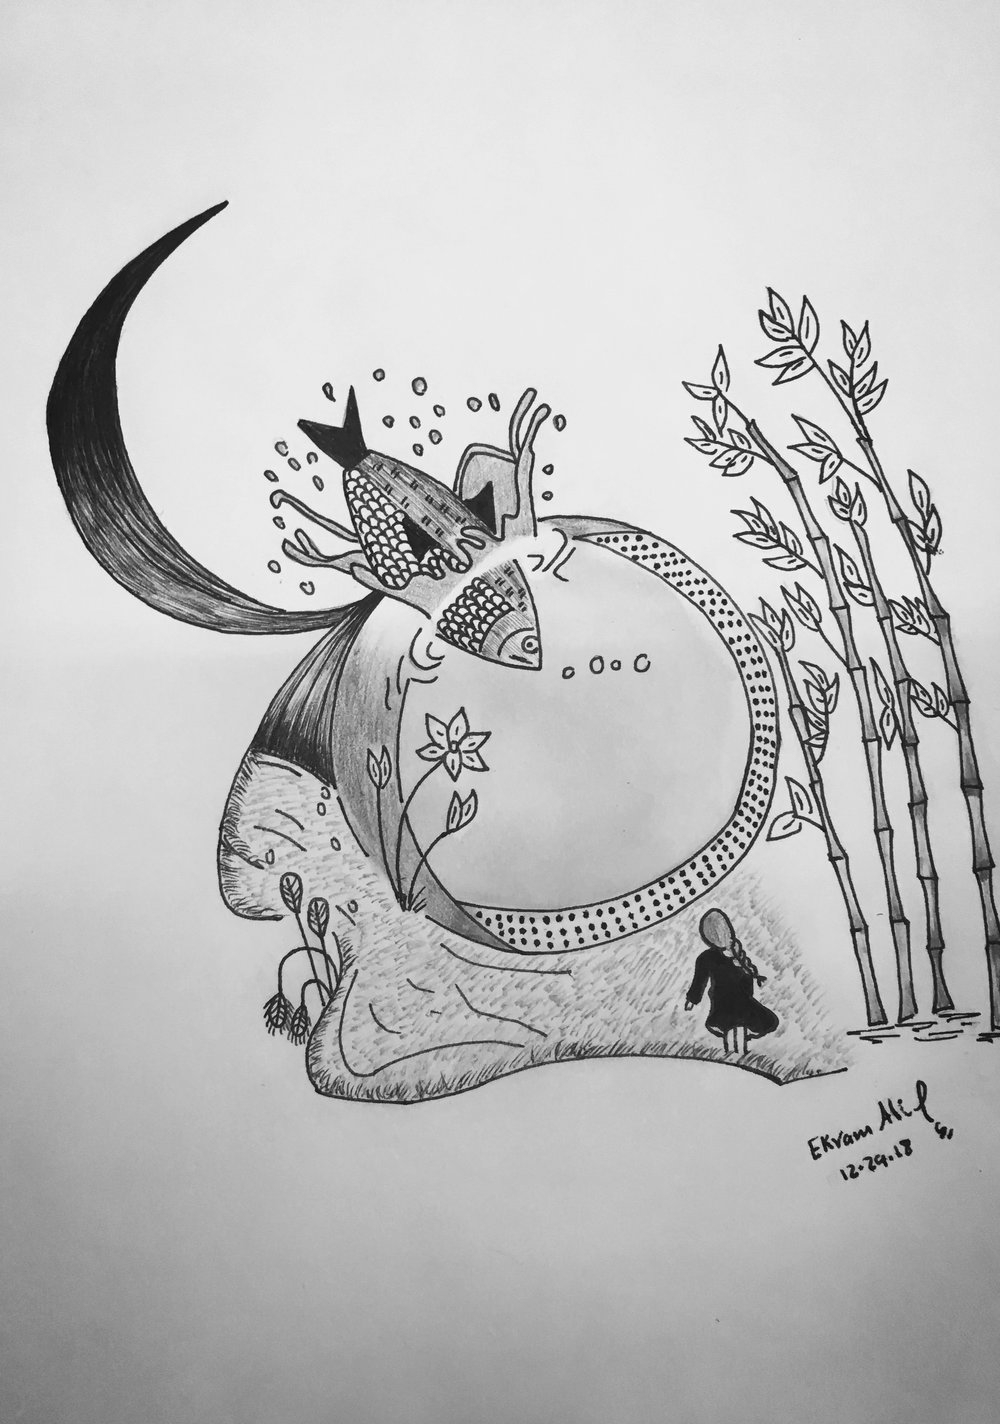 Drawing by Ekram Alrowmeim